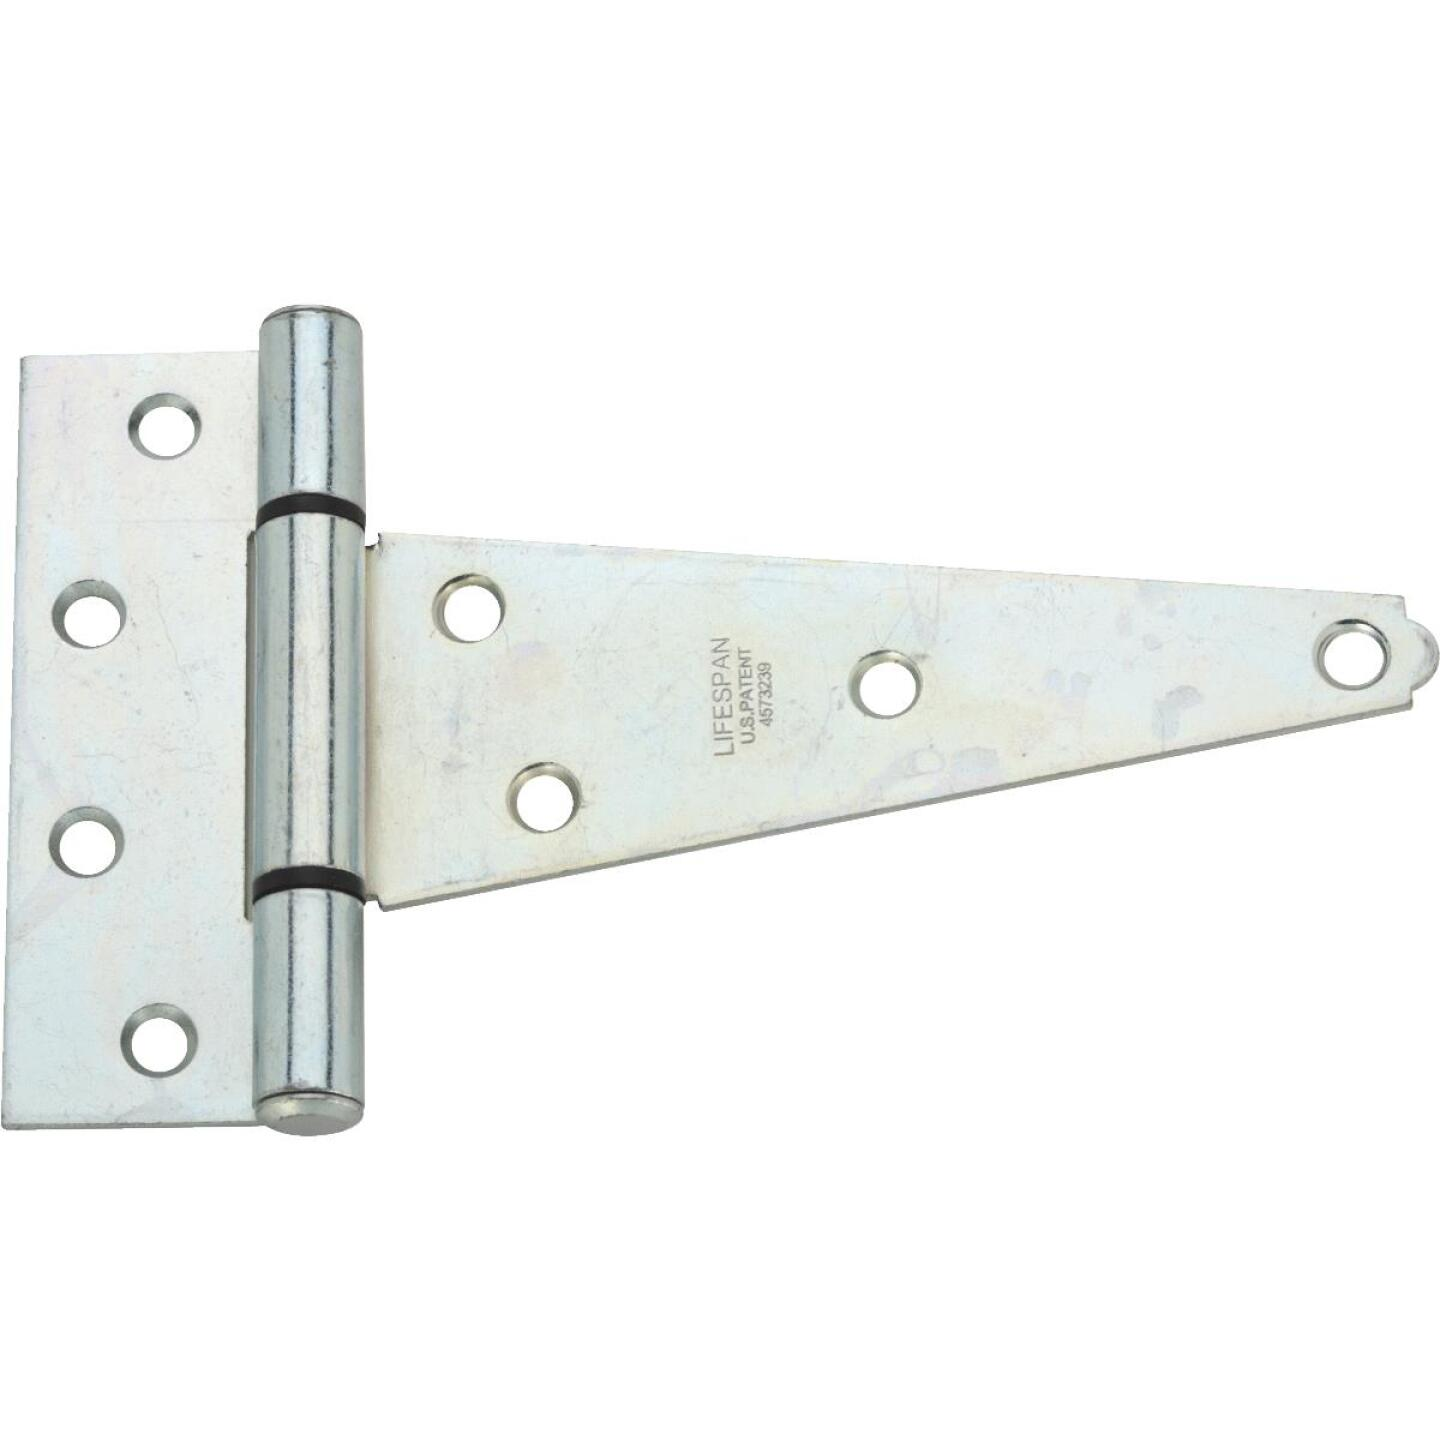 National 6 In. Zinc-Plated Steel Heavy-Duty Tee Hinge Image 1